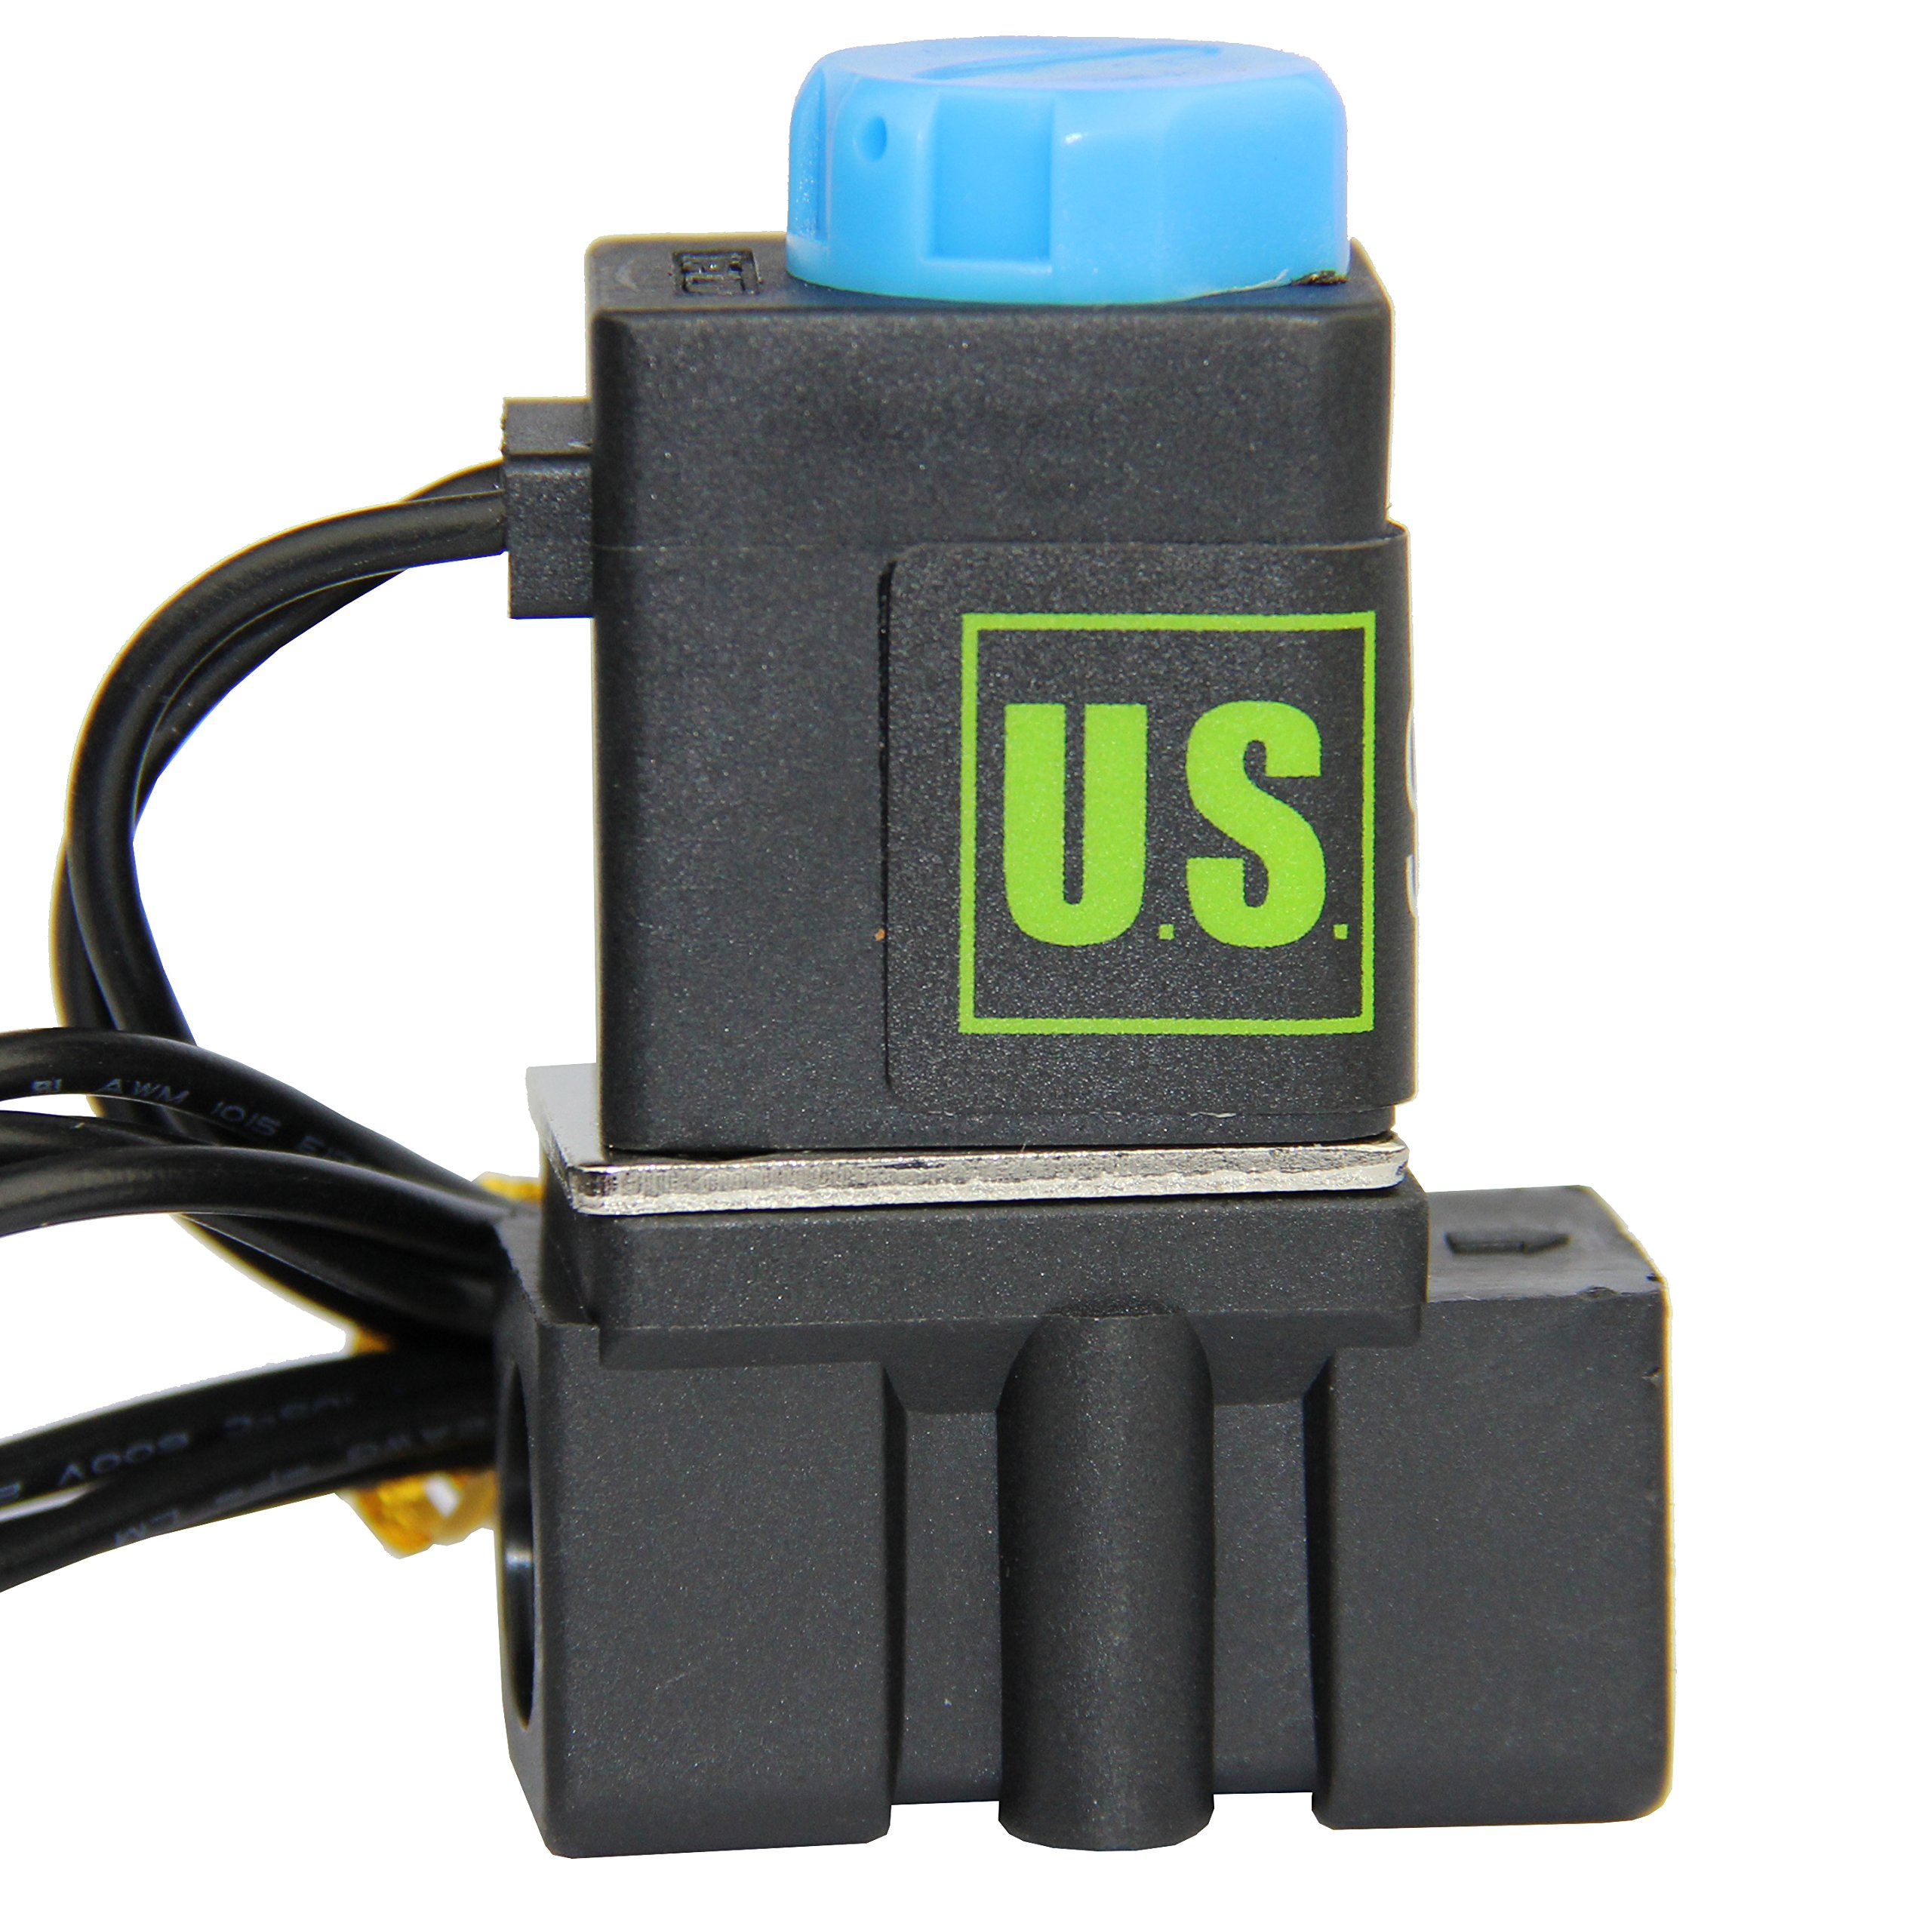 -NEW- Solenoid Valve 1/4'' Normally Closed (N.C.) 12VDC Nylon (NEW Improved Crack-resistant Polymer) Blue Cap by U.S. Solid by U.S. Solid (Image #3)